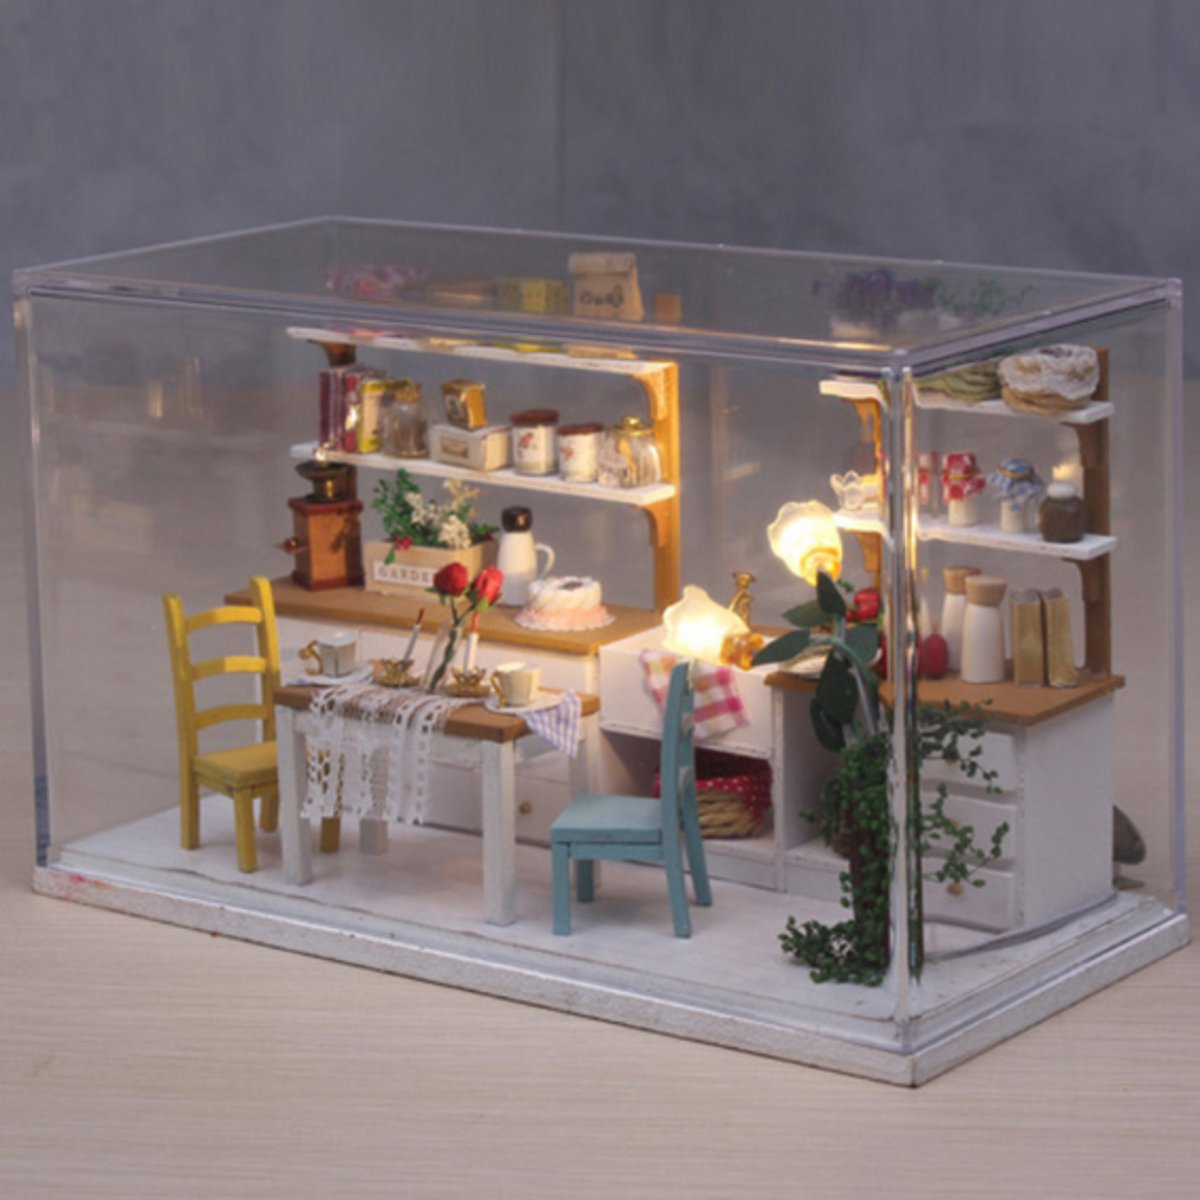 Diy Küche Led Hoomeda Diy Wooden Dollhouse Mini Küche Room Modell Kit